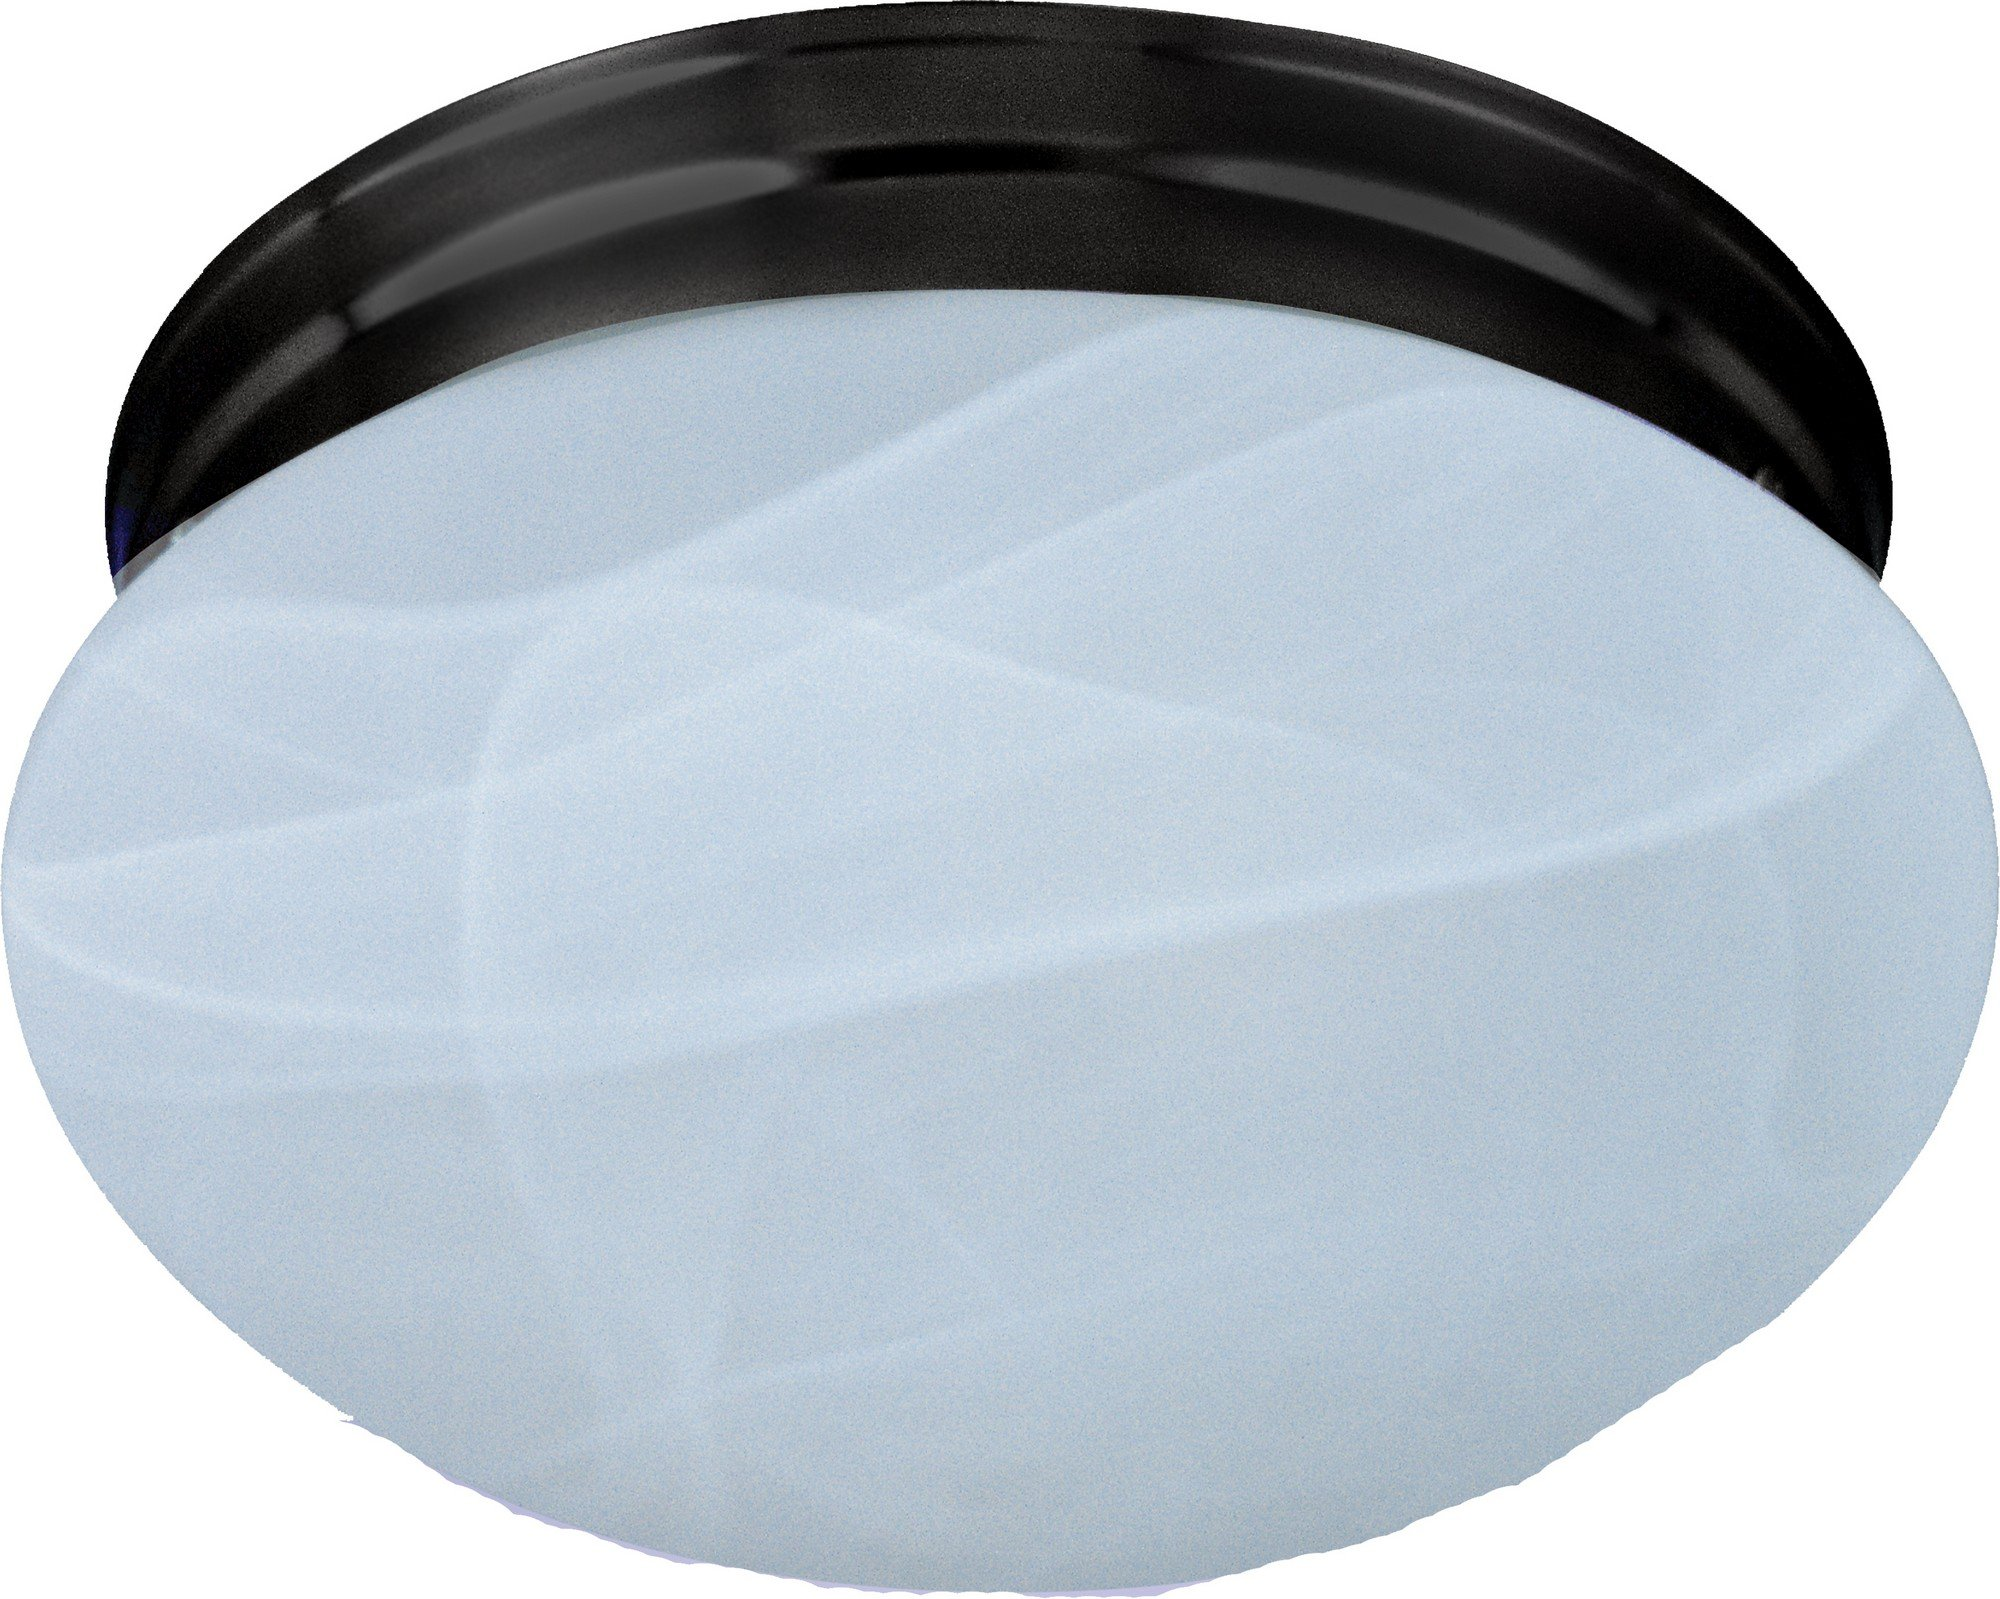 Maxim 5884MROI Essentials 1-Light Flush Mount, Oil Rubbed Bronze Finish, Marble Glass, MB Incandescent Incandescent Bulb , 60W Max., Dry Safety Rating, Standard Dimmable, Glass Shade Material, 4032 Rated Lumens